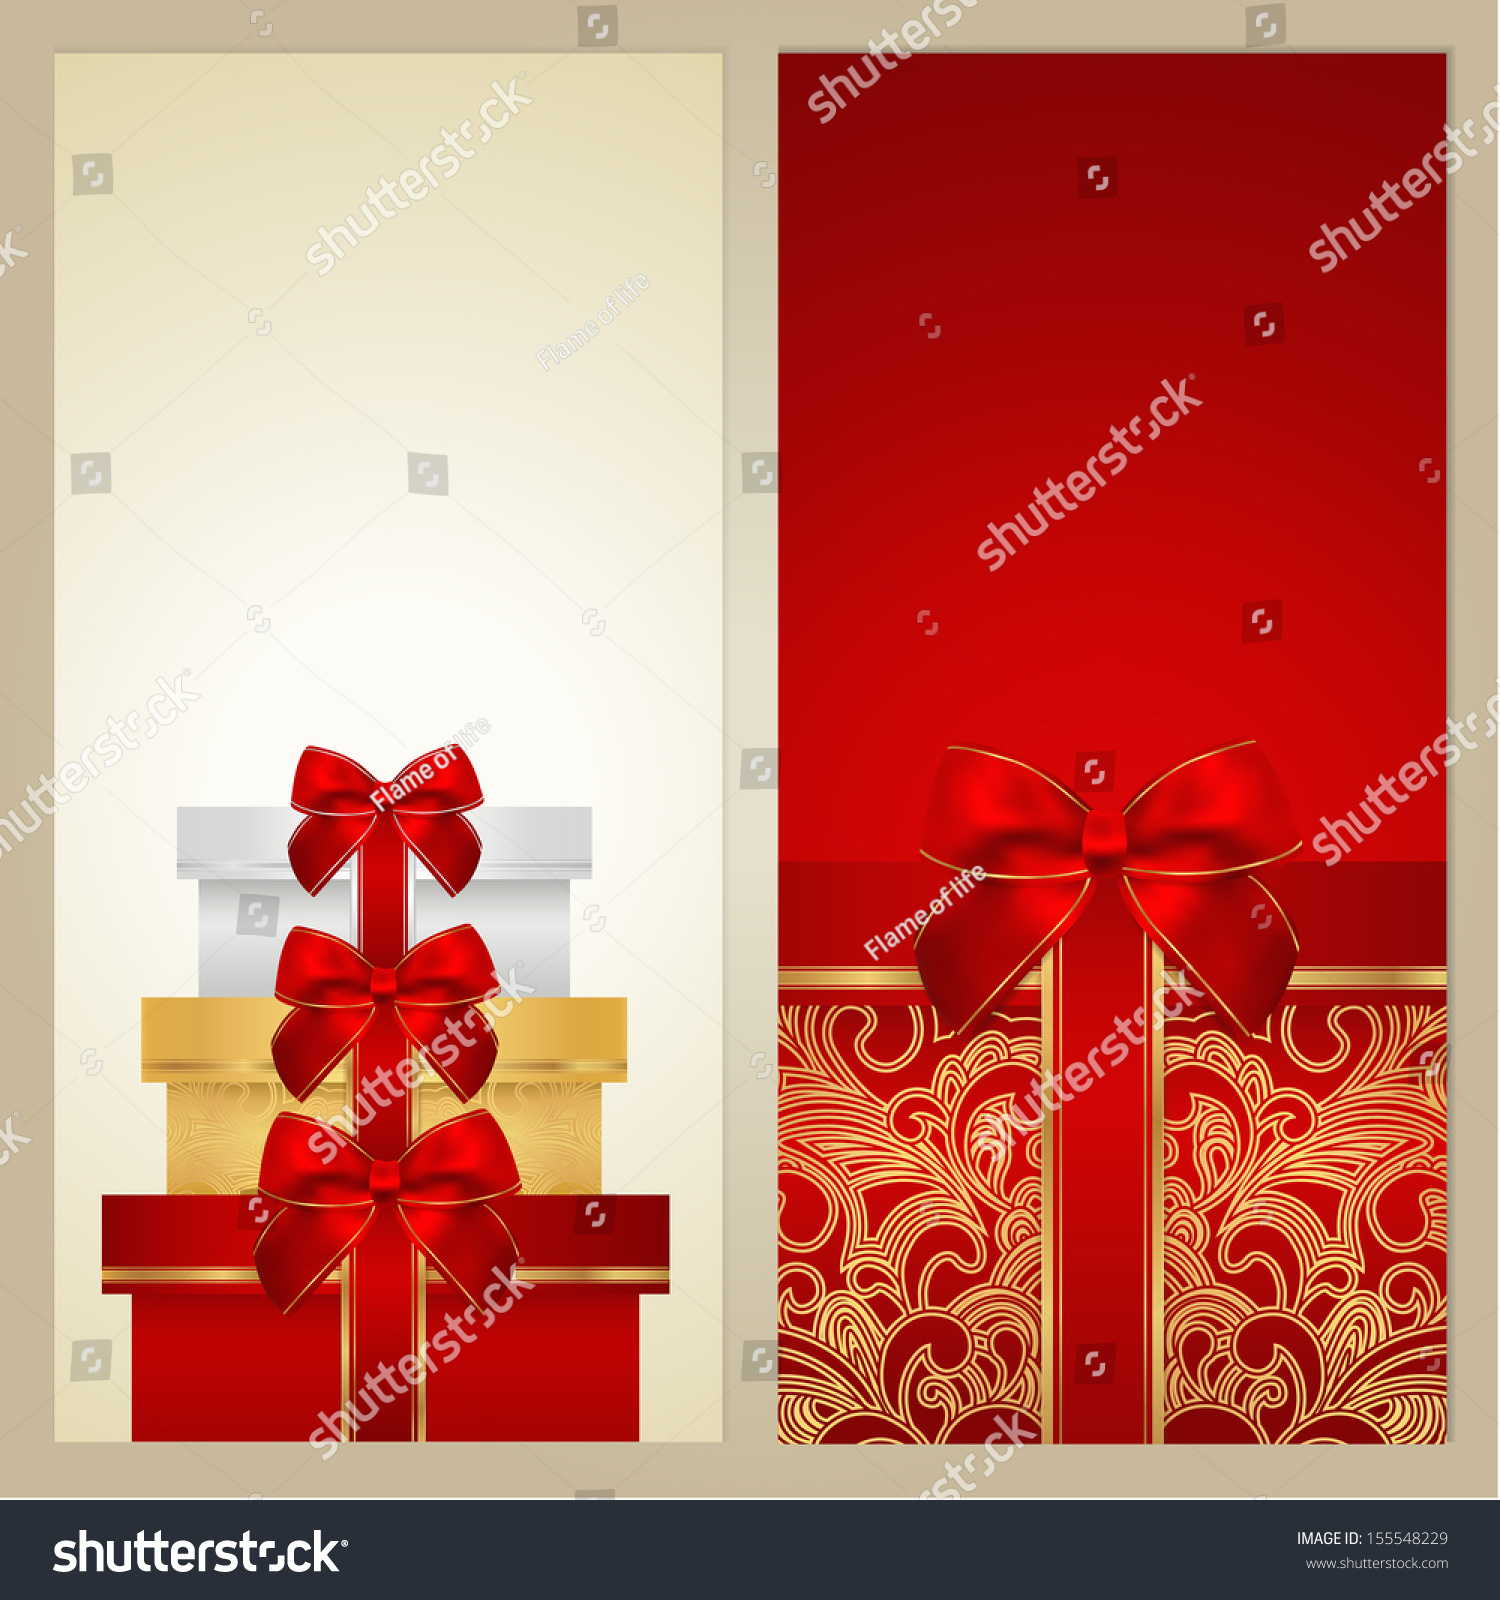 Voucher Gift Certificate Coupon Gift Card Stock Illustration